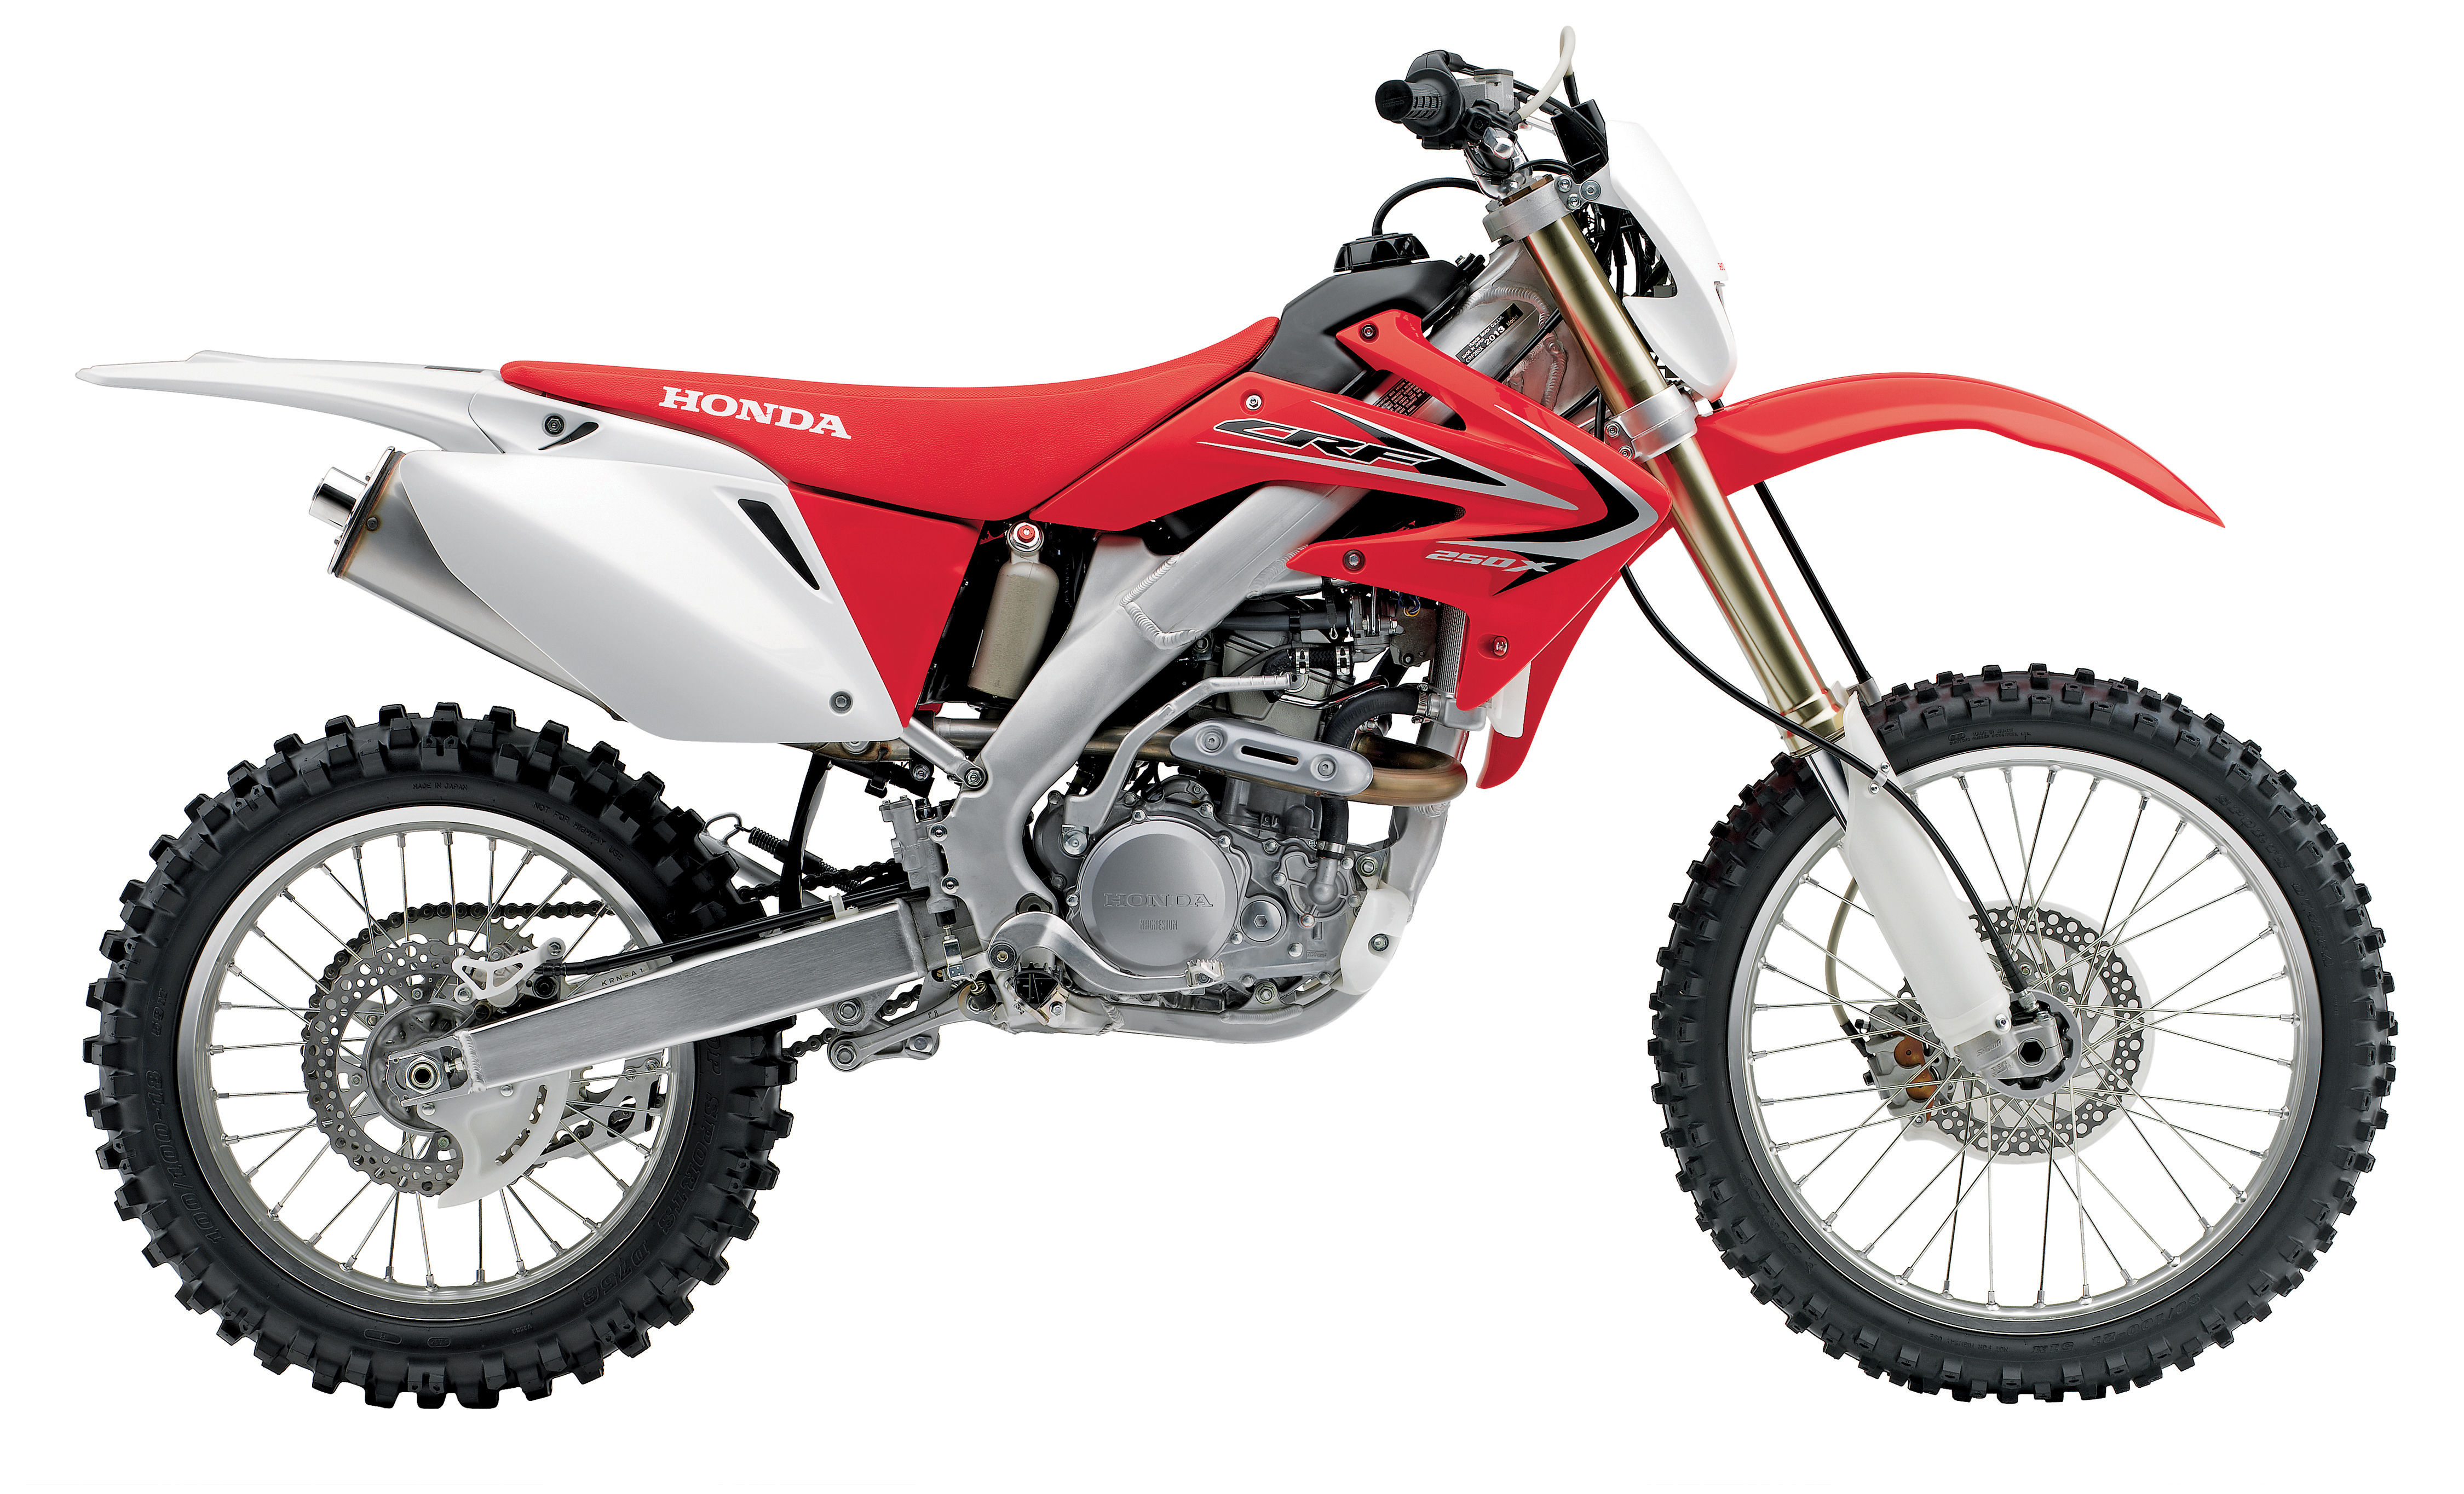 Tank Sports Touring 250 Deluxe 2007 #4